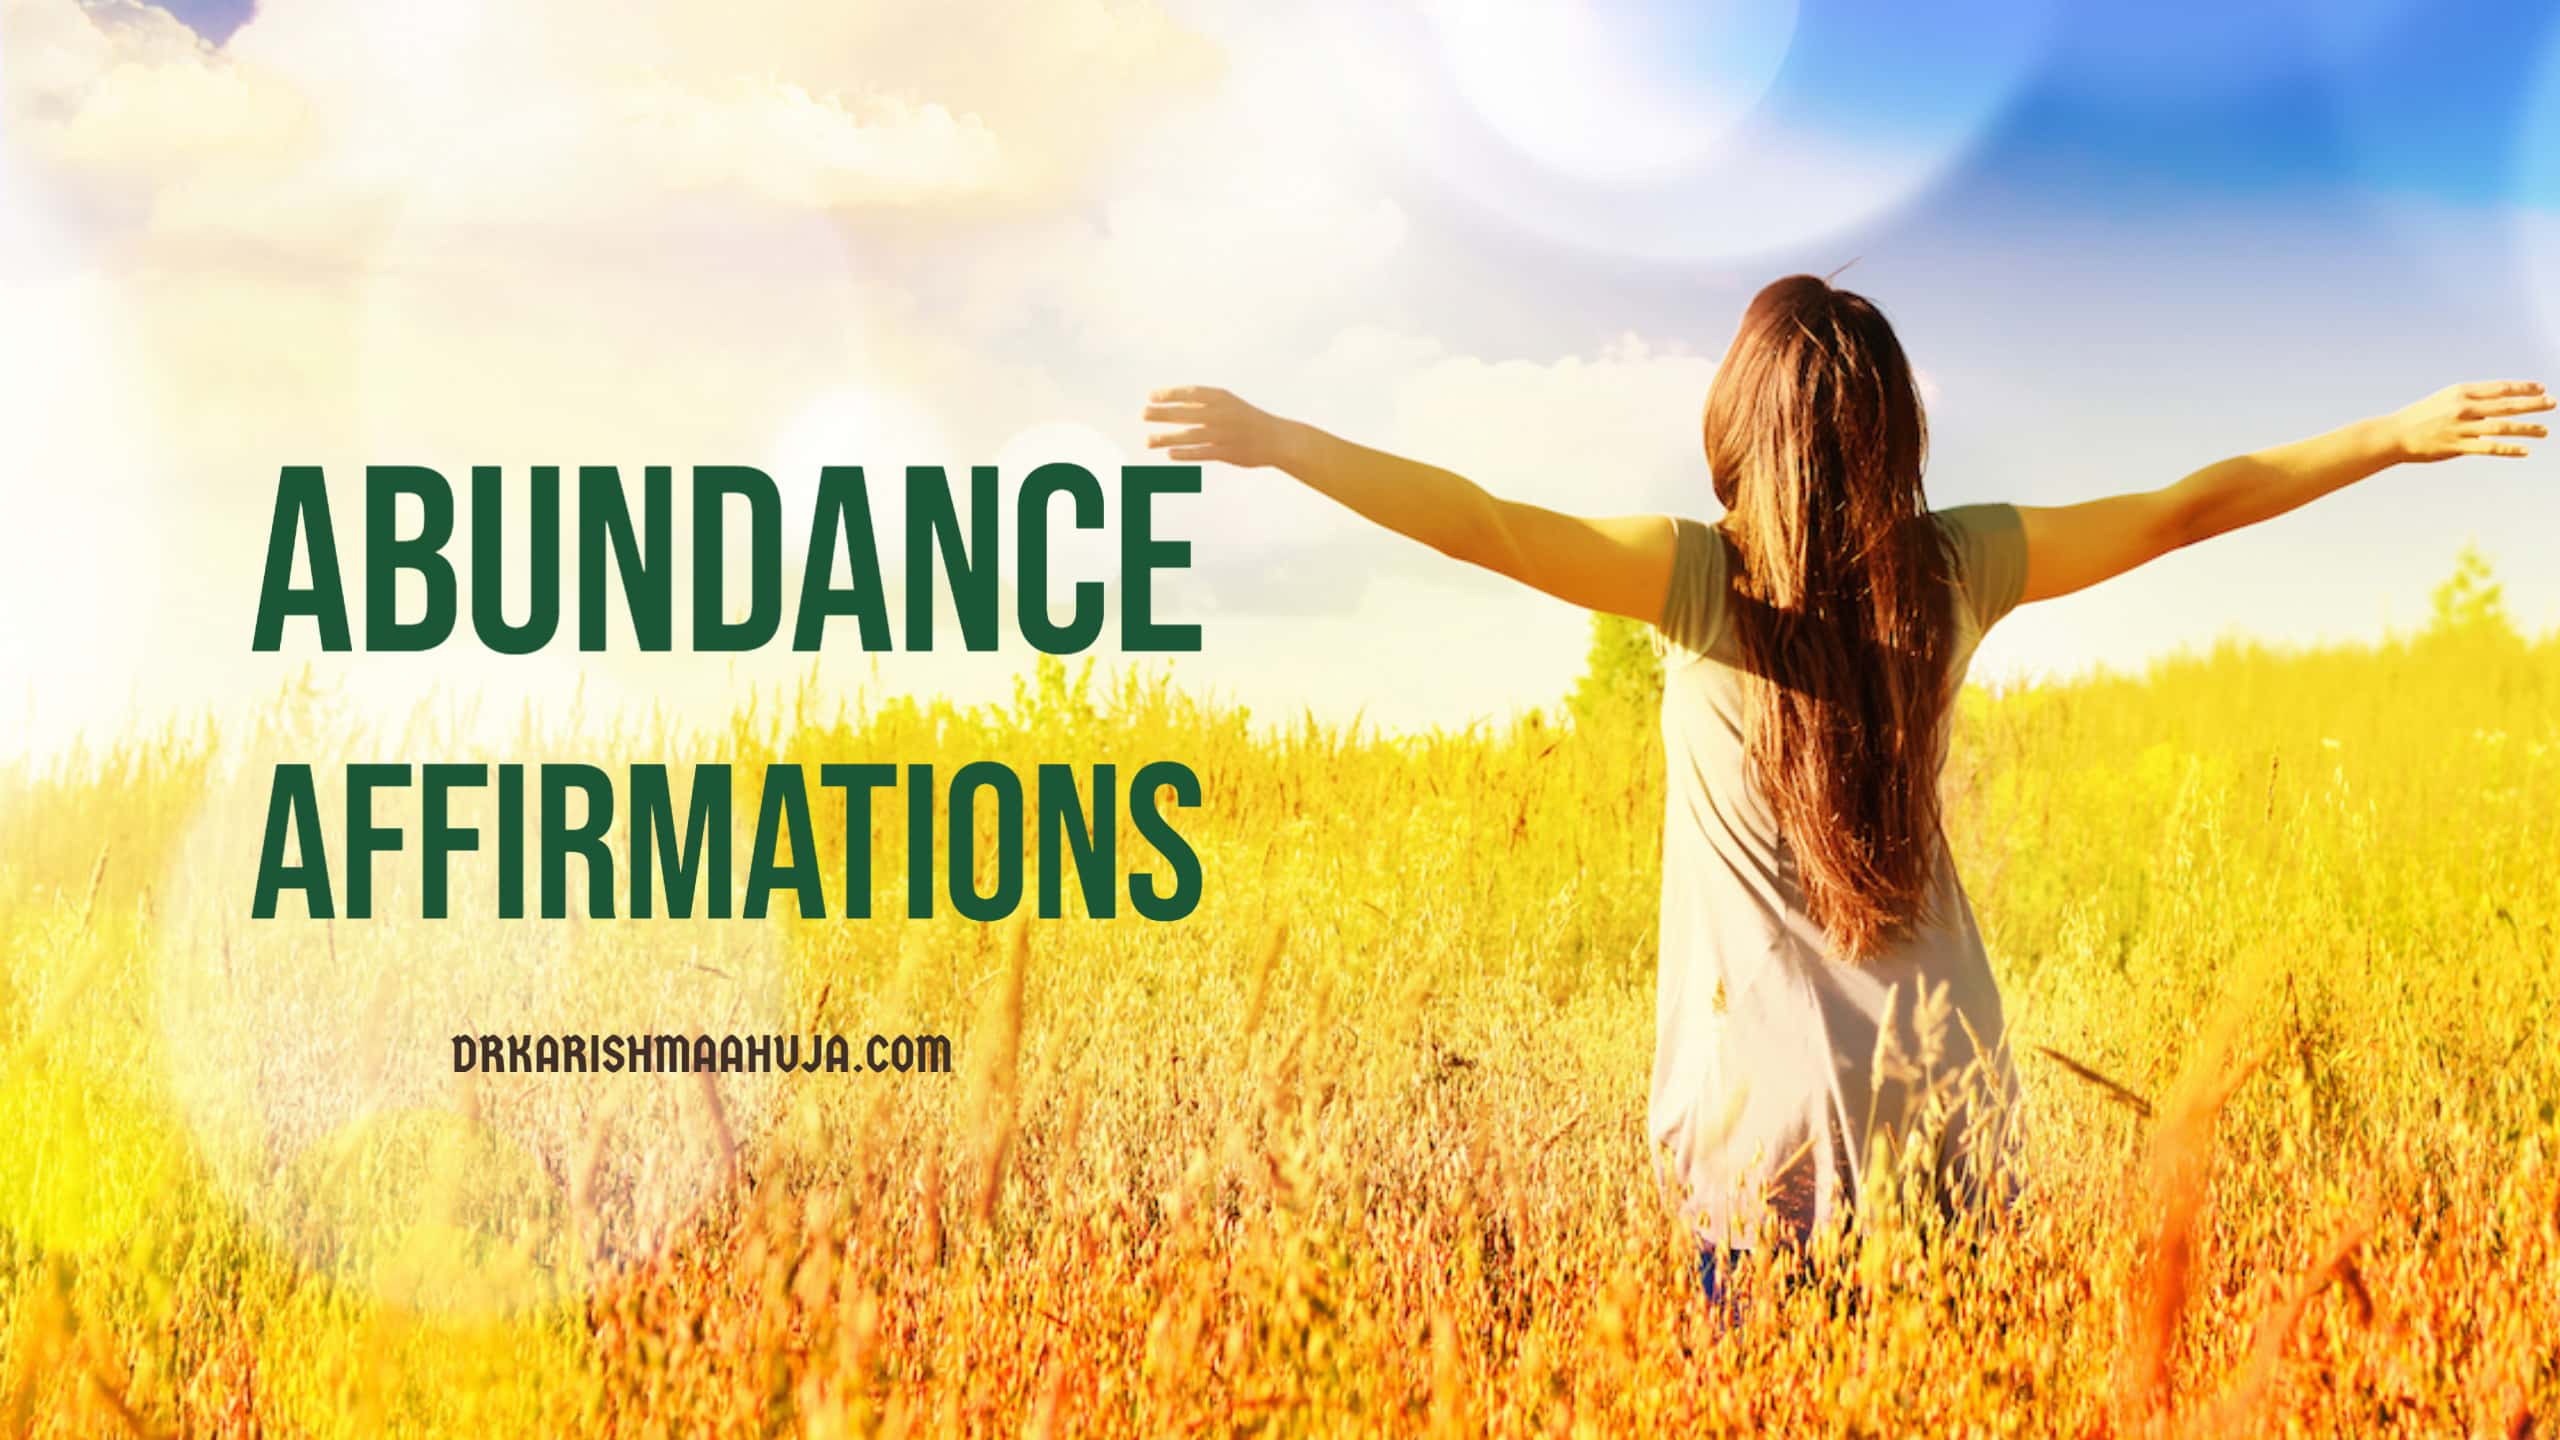 Abundance Affirmations to Attract Wealth and Prosperity by Dr Karishma Ahuja